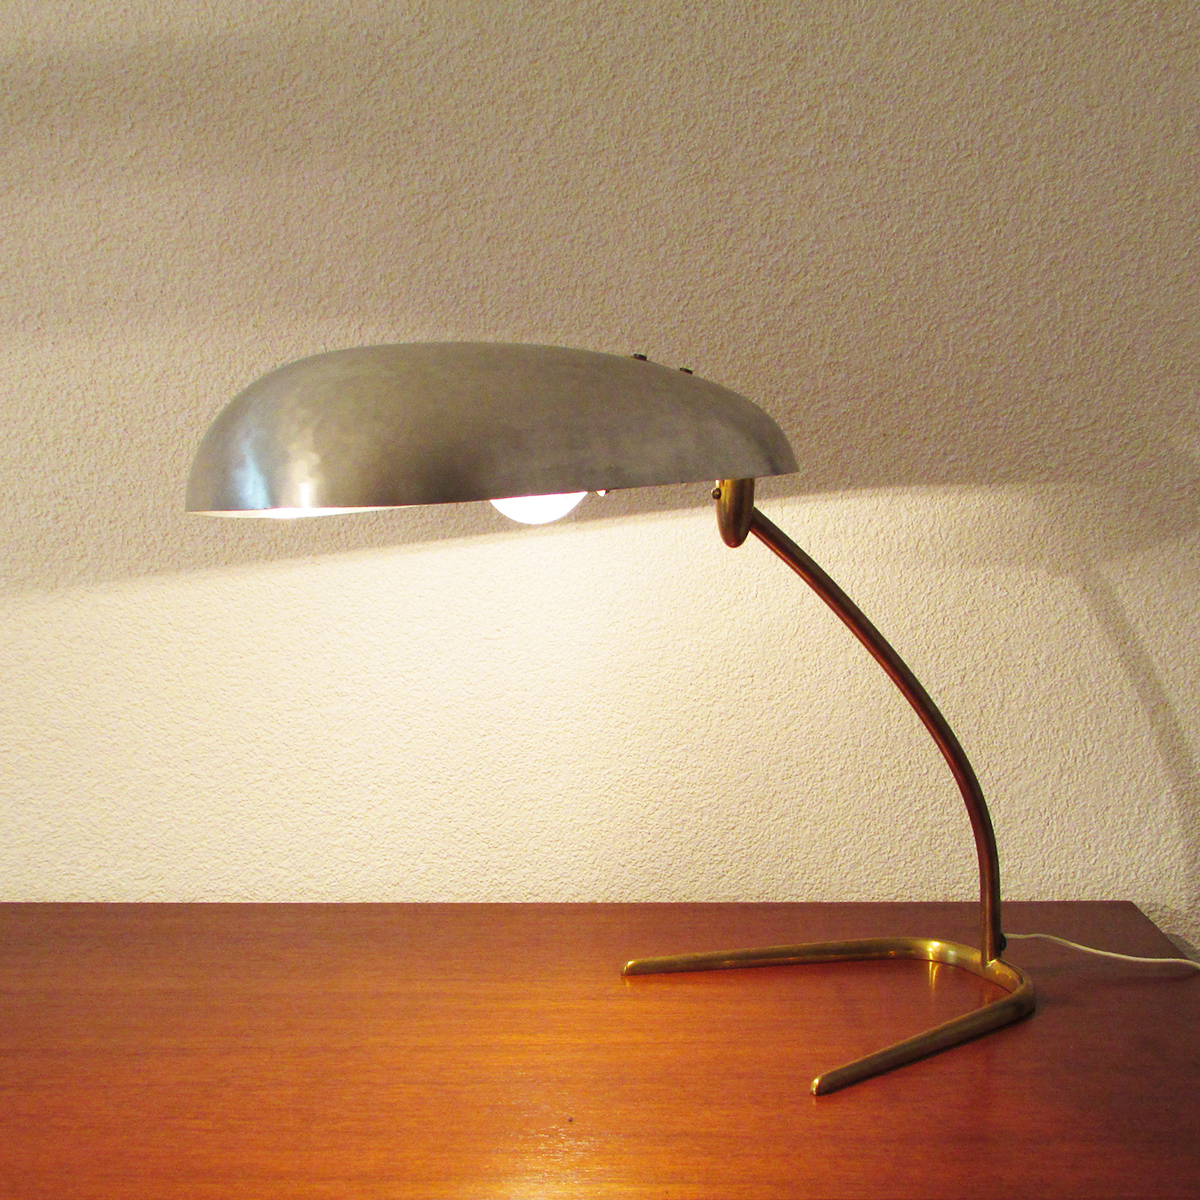 bag-turgi-desk-lamp